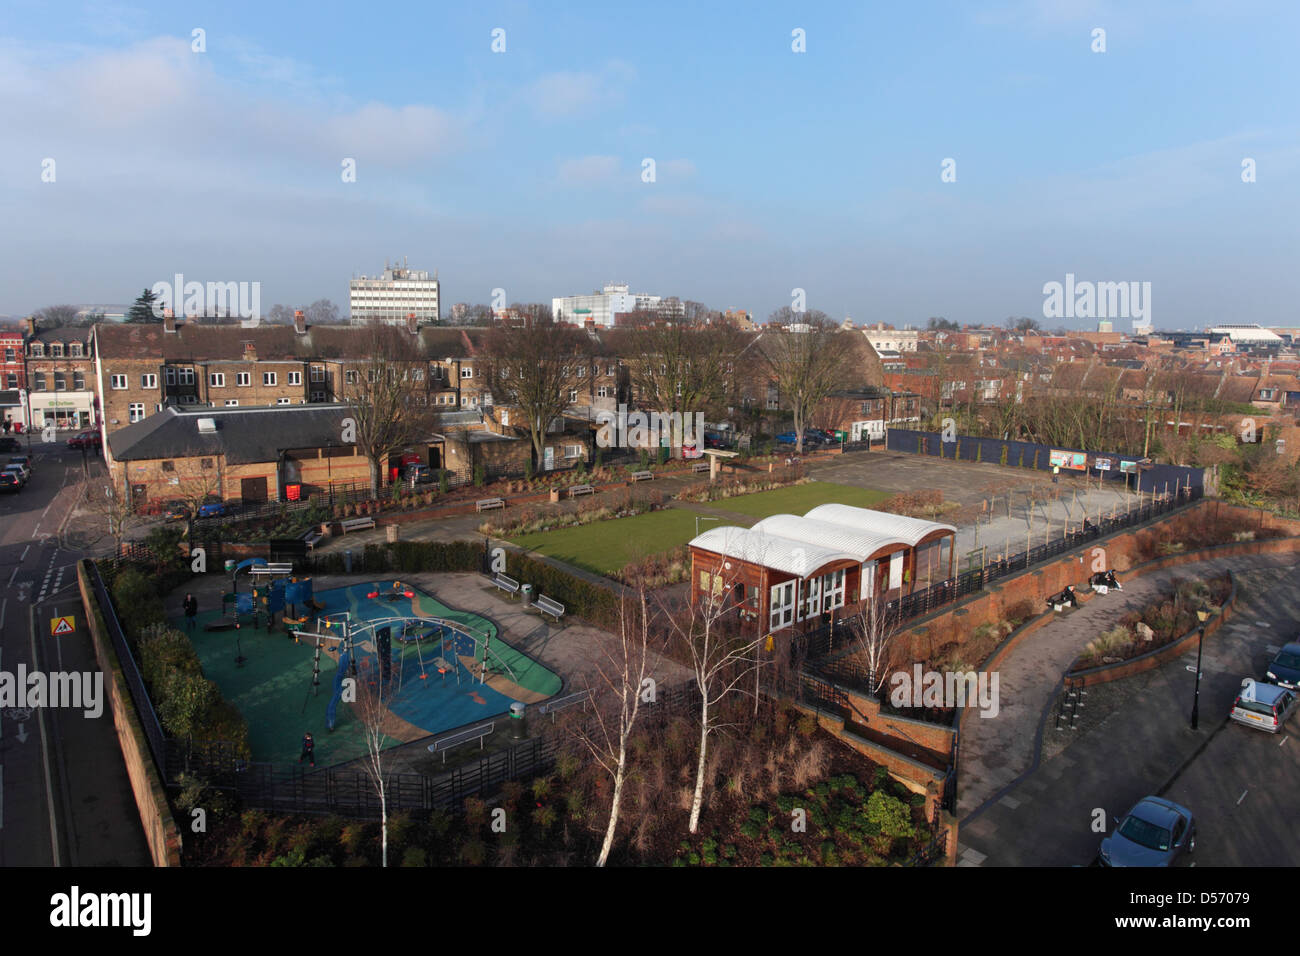 Twickenham Diamond Jubilee Gardens opened on the site of the old lido in June 2012 - Stock Image